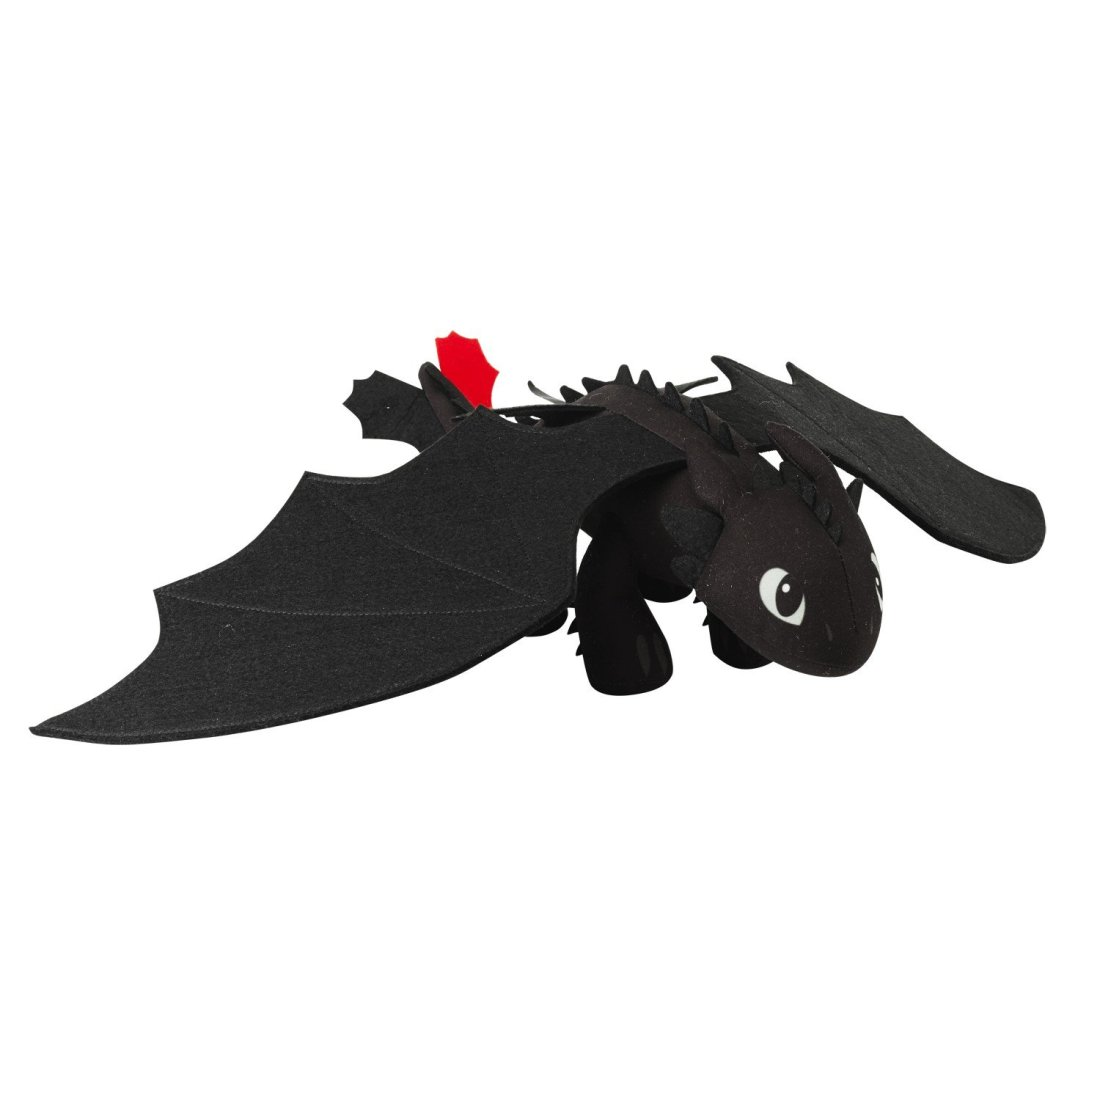 how to train your dragon toys target